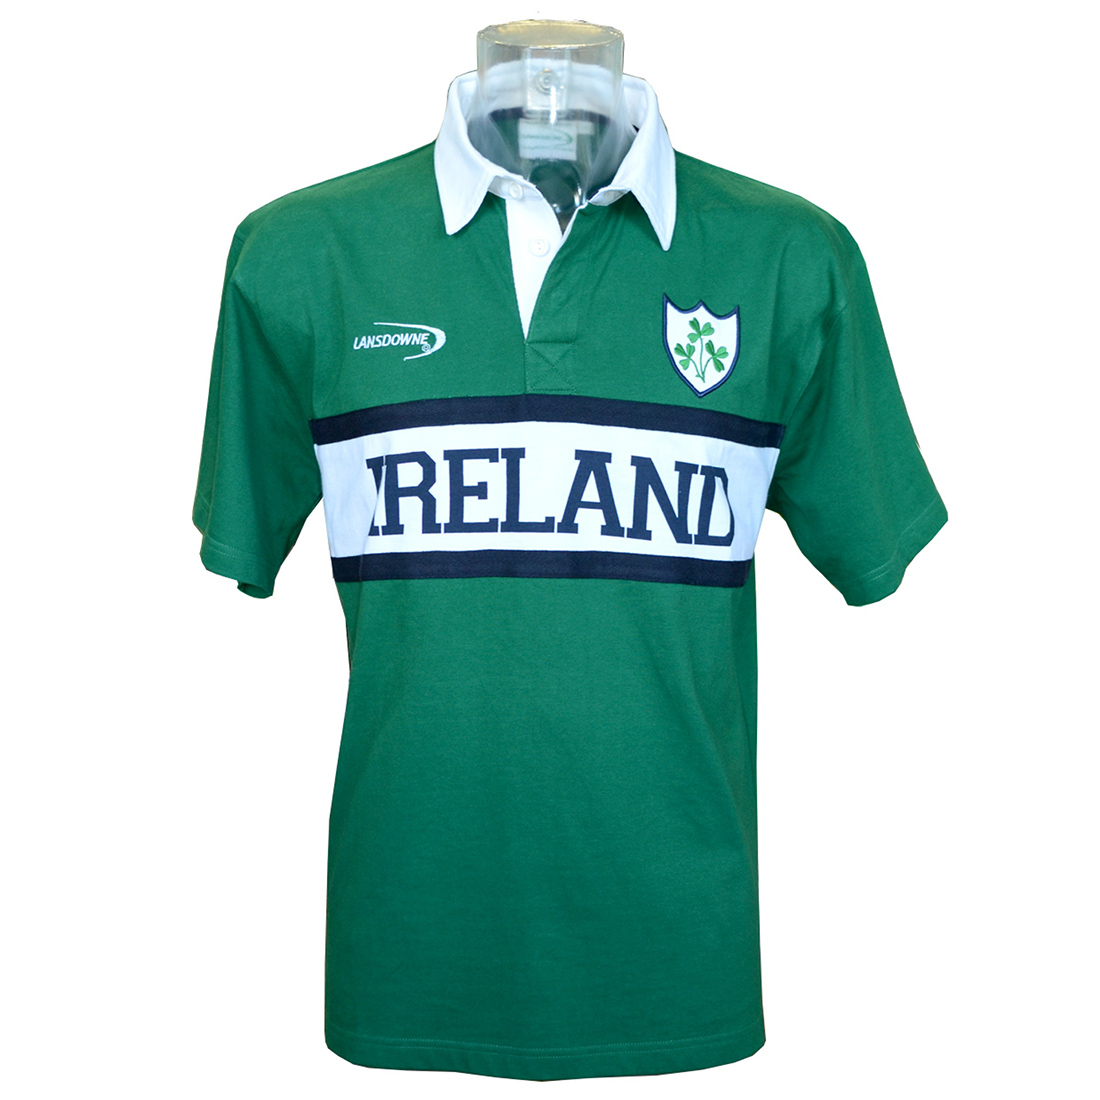 Ireland Panel Rugby Shirt (S - XXXL)